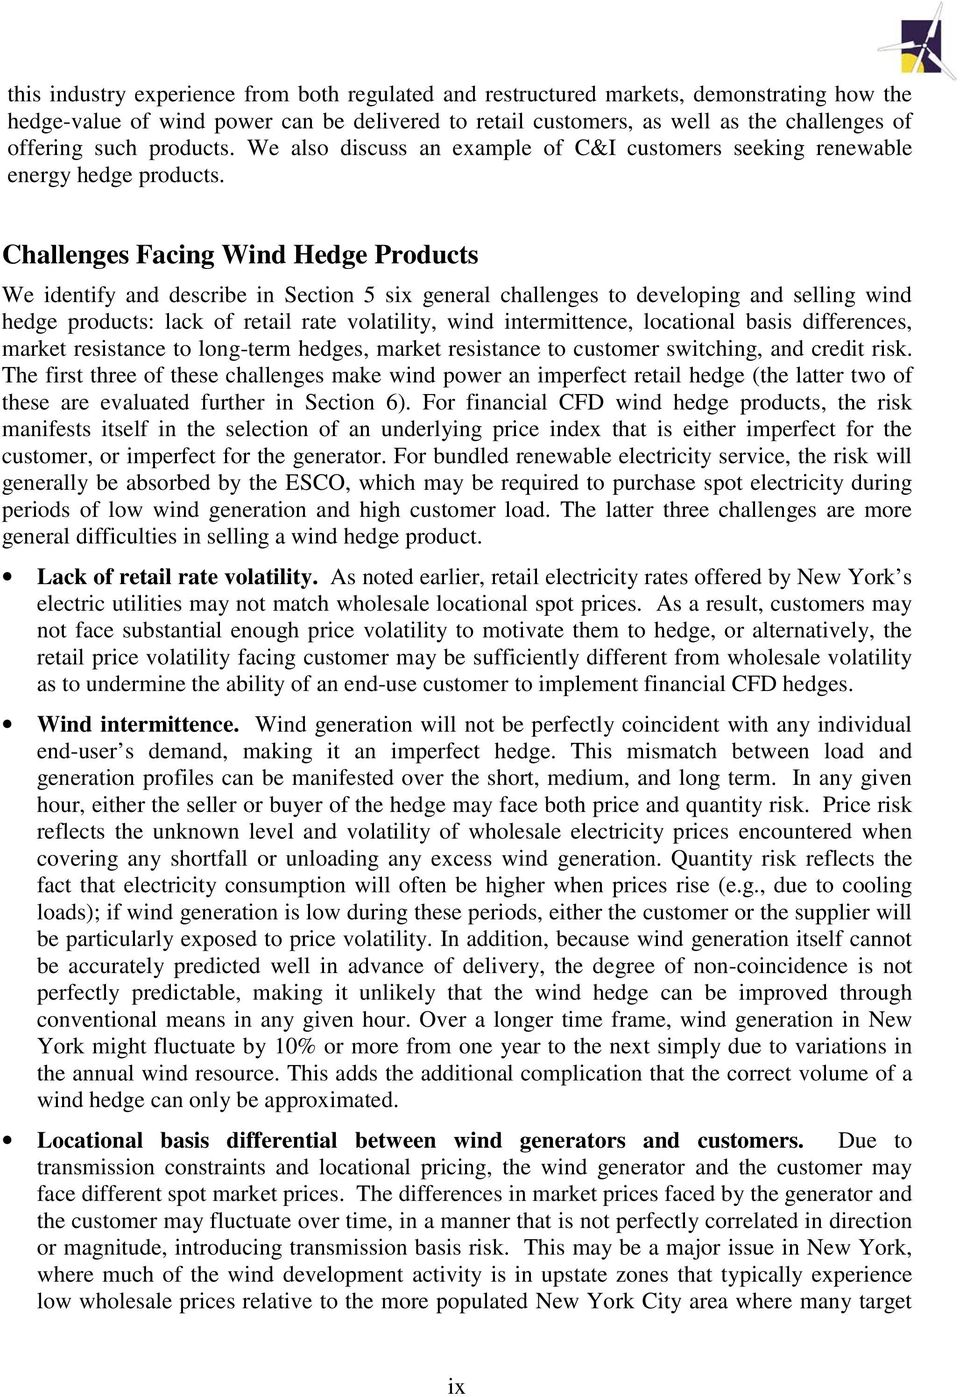 Challenges Facing Wind Hedge Products We identify and describe in Section 5 six general challenges to developing and selling wind hedge products: lack of retail rate volatility, wind intermittence,